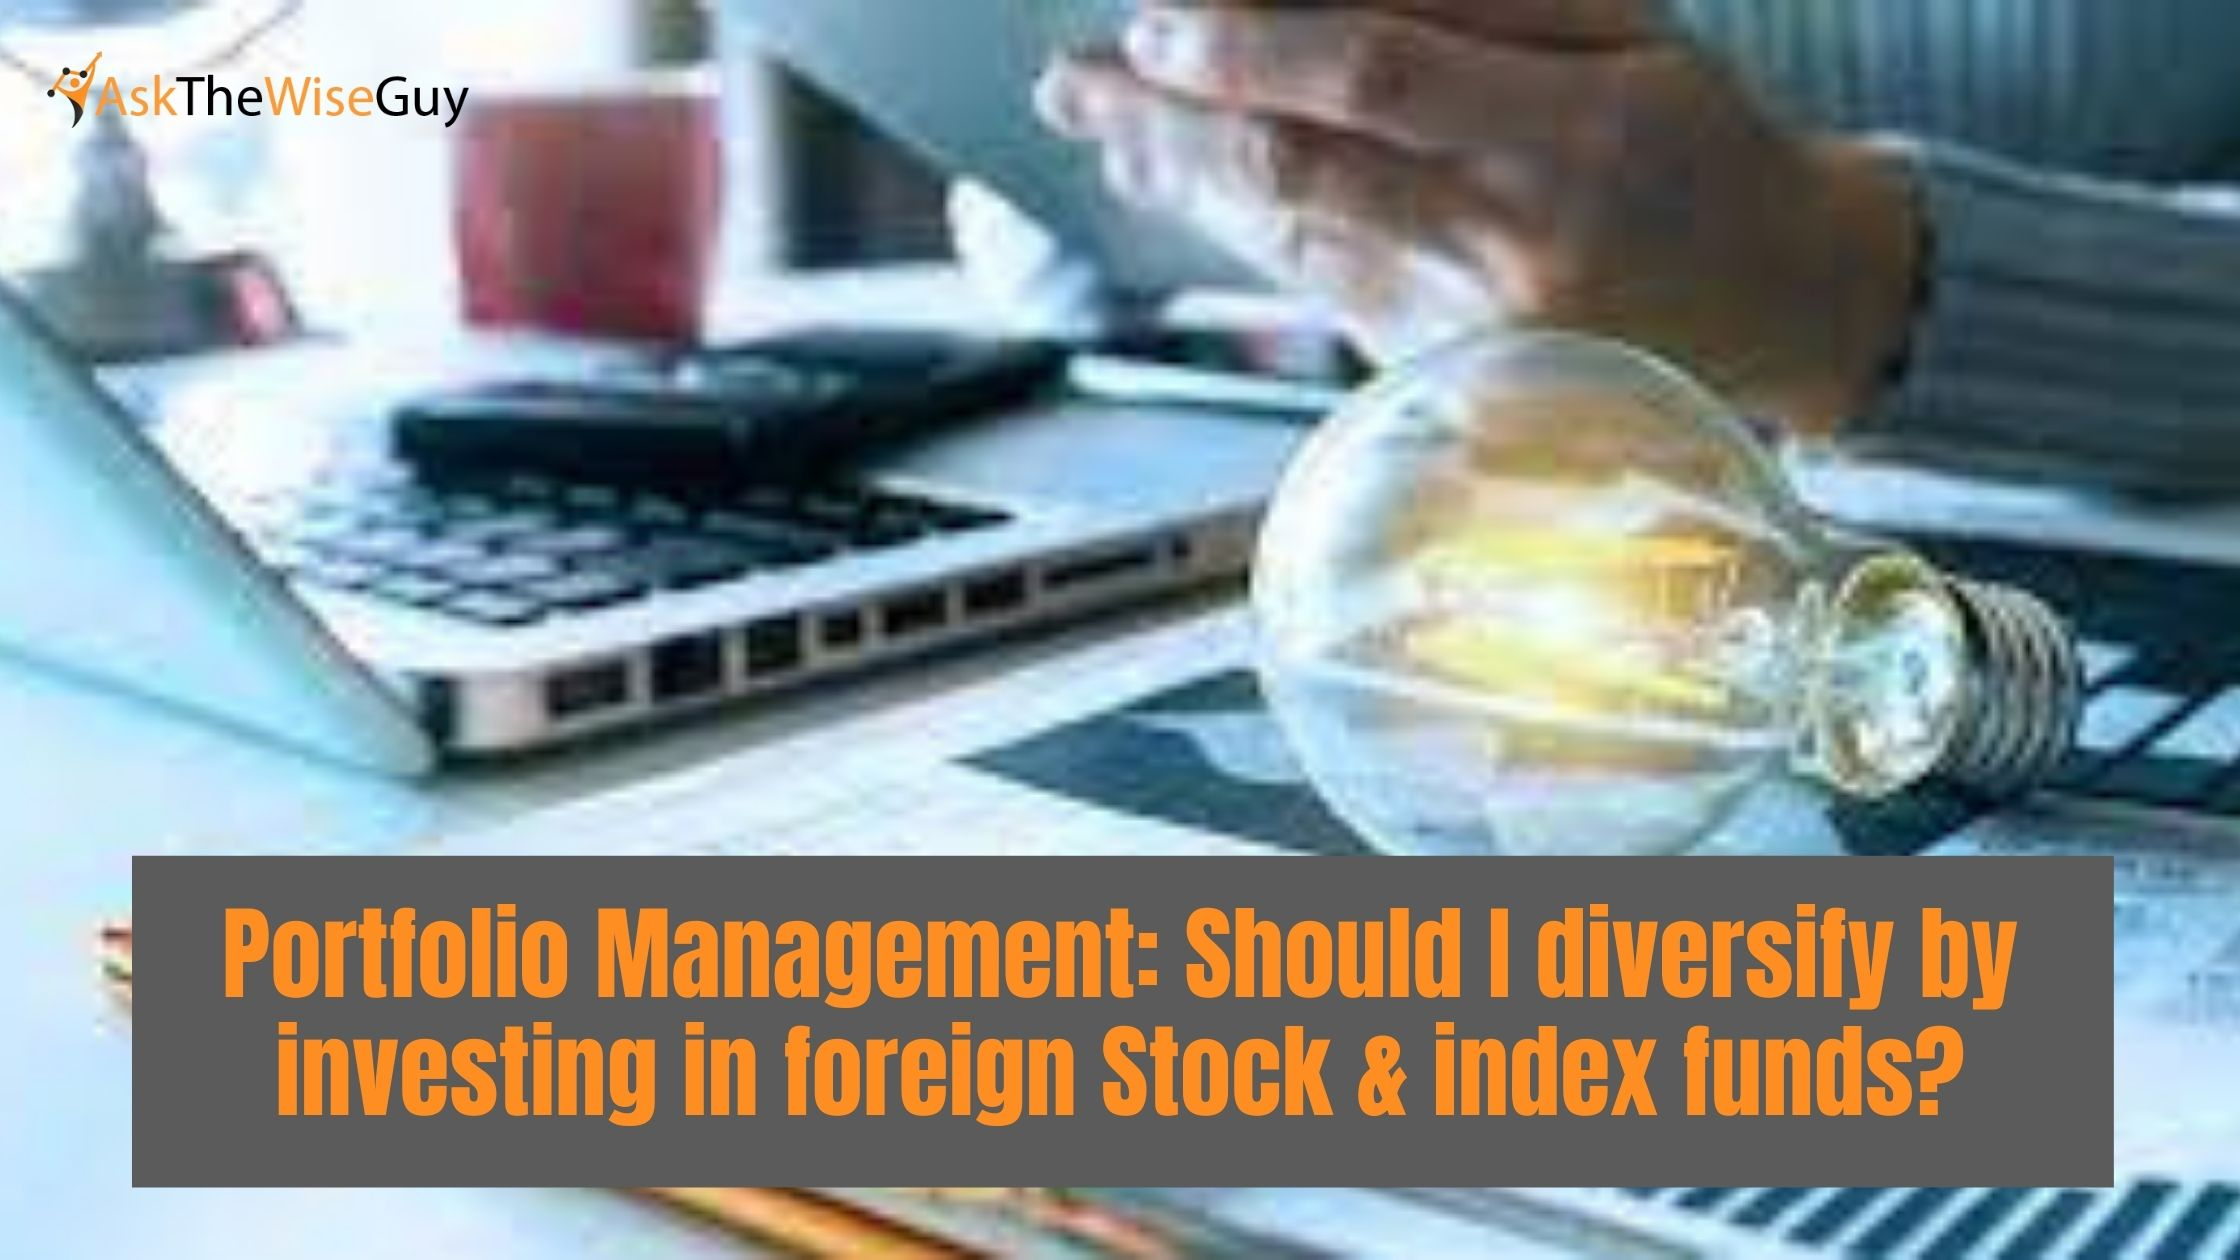 Portfolio Management: Should I diversify by investing in foreign Stock & index funds?